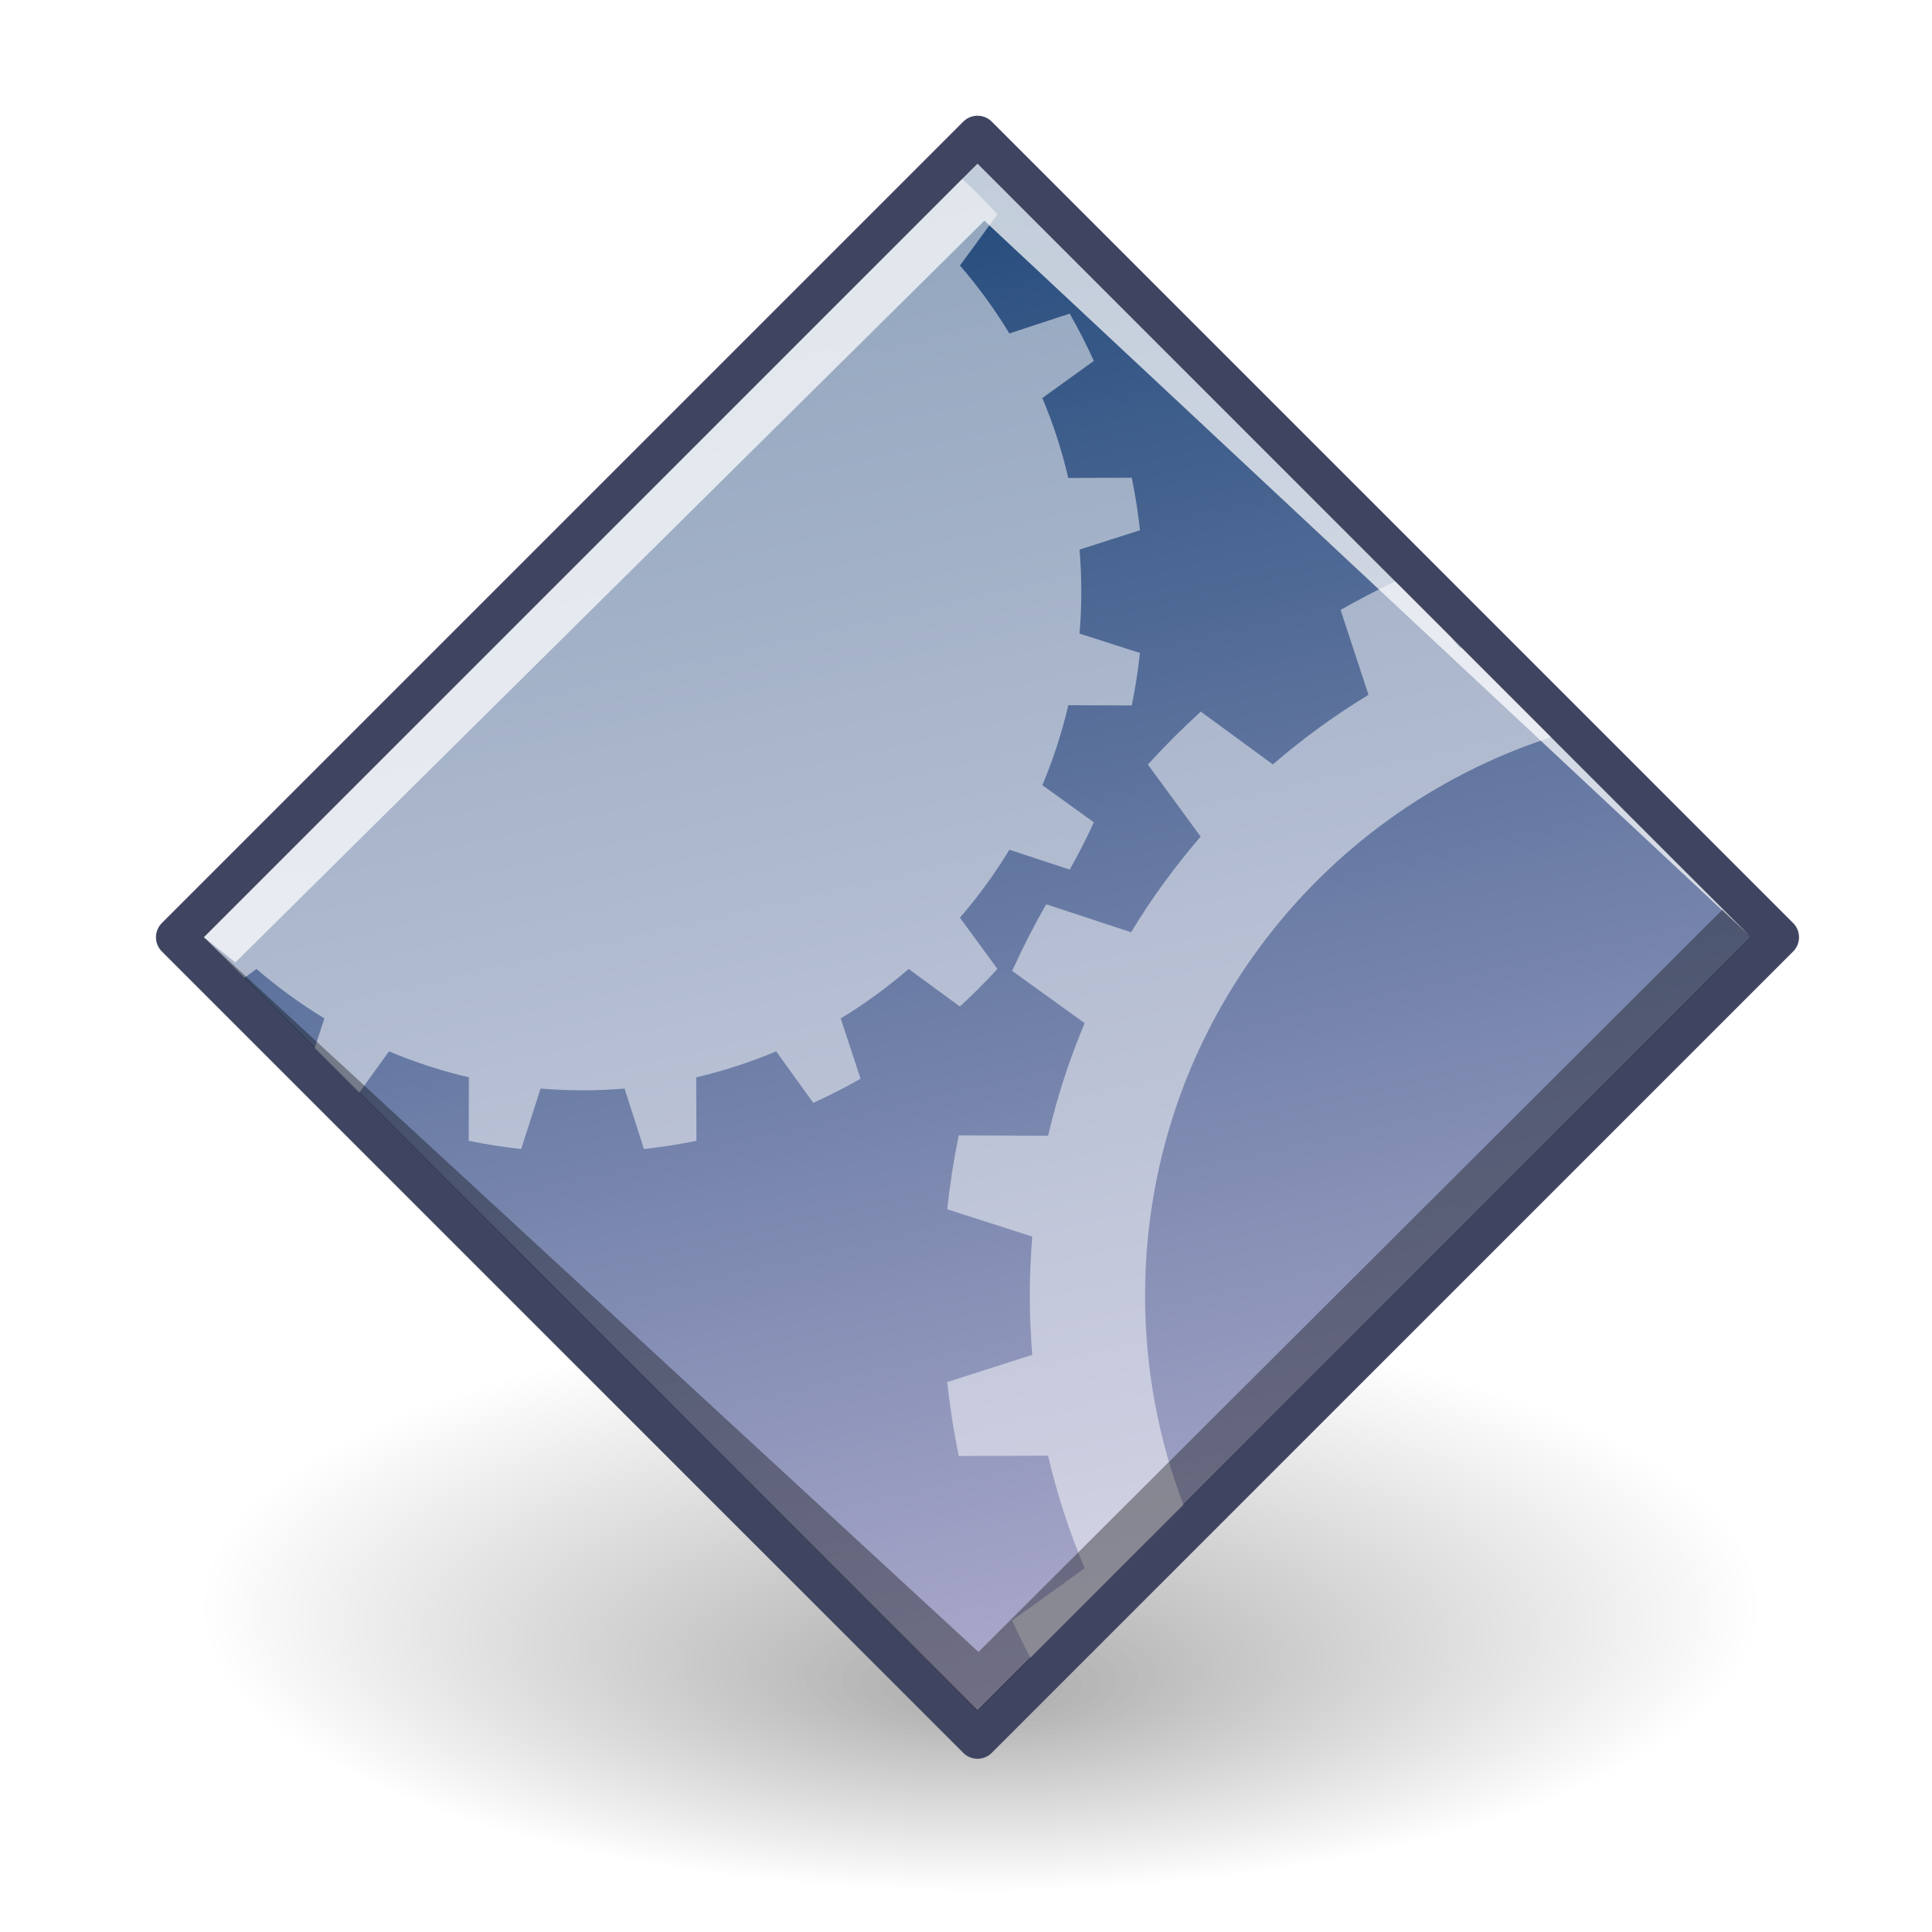 tango application x executable by warszawianka